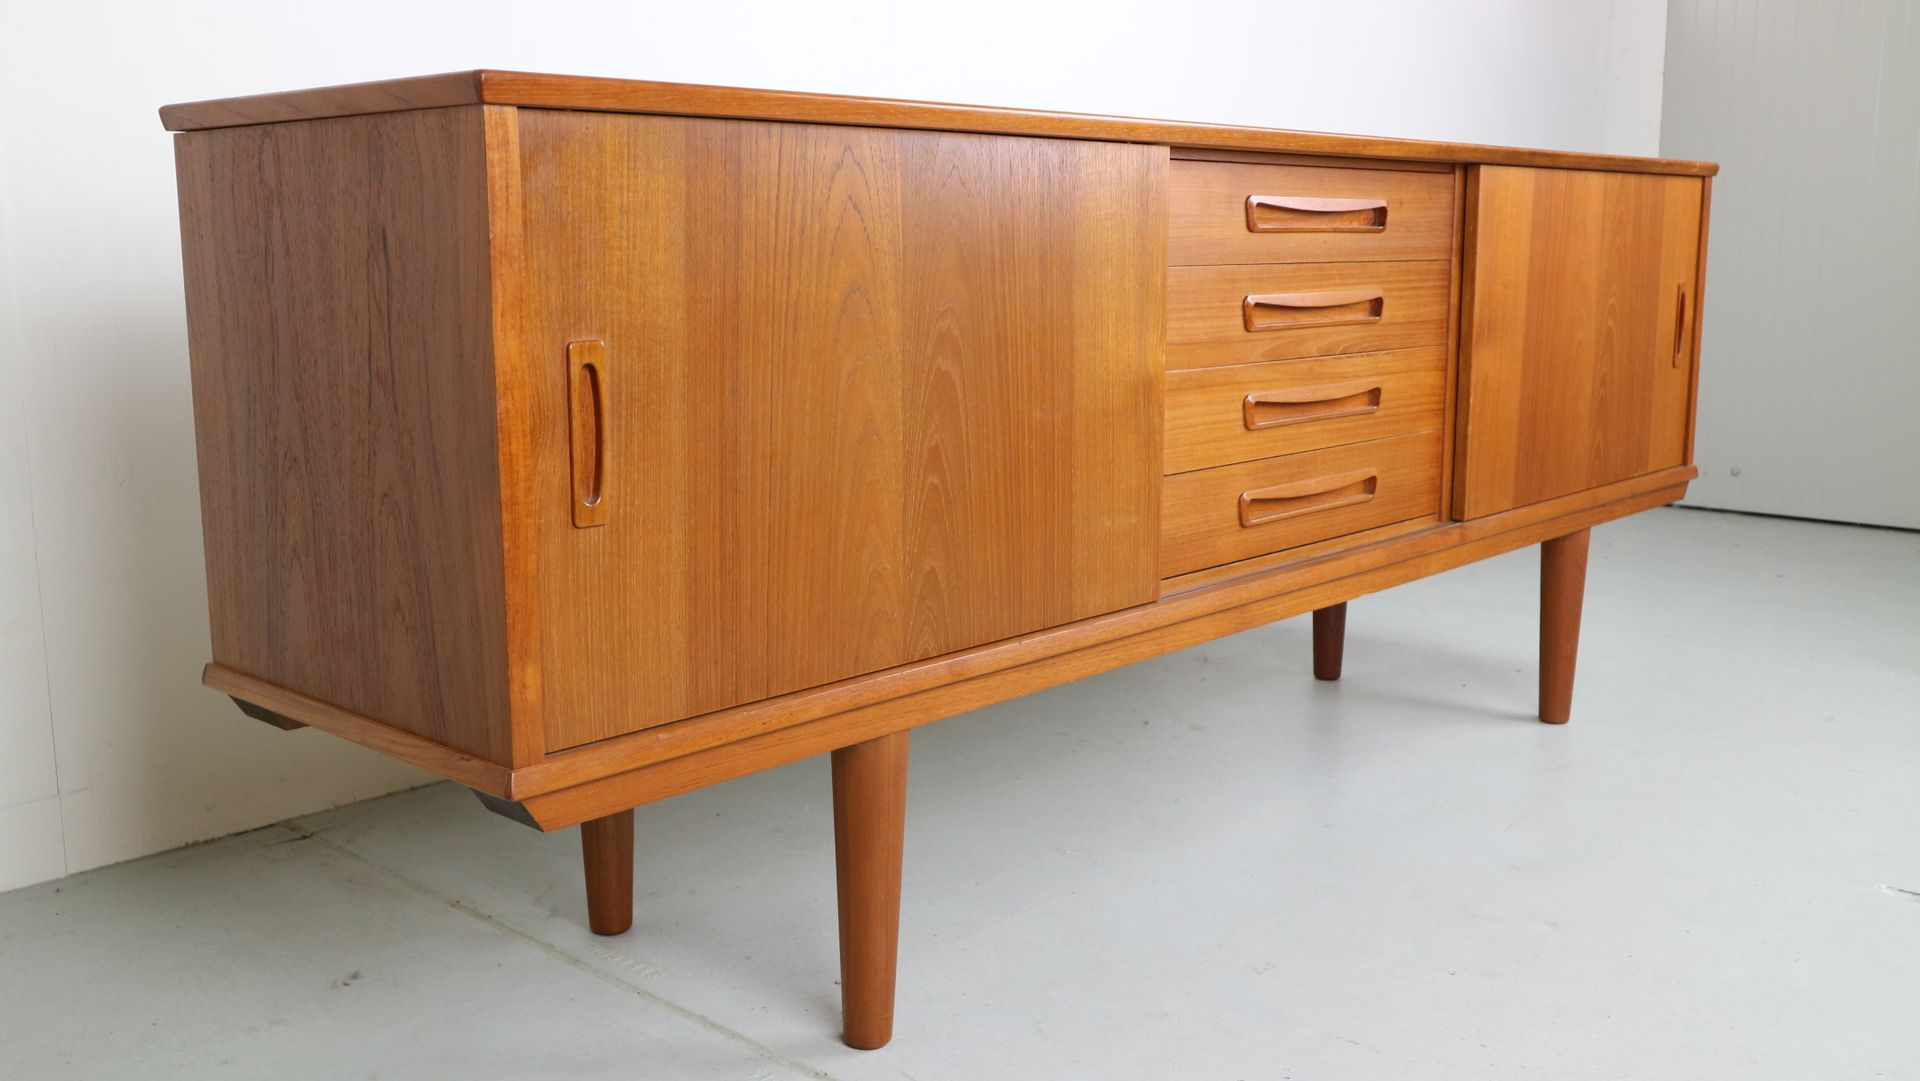 Danish Teak Credenza For Sale : Teak sideboard danish compass www.bilderbeste.com